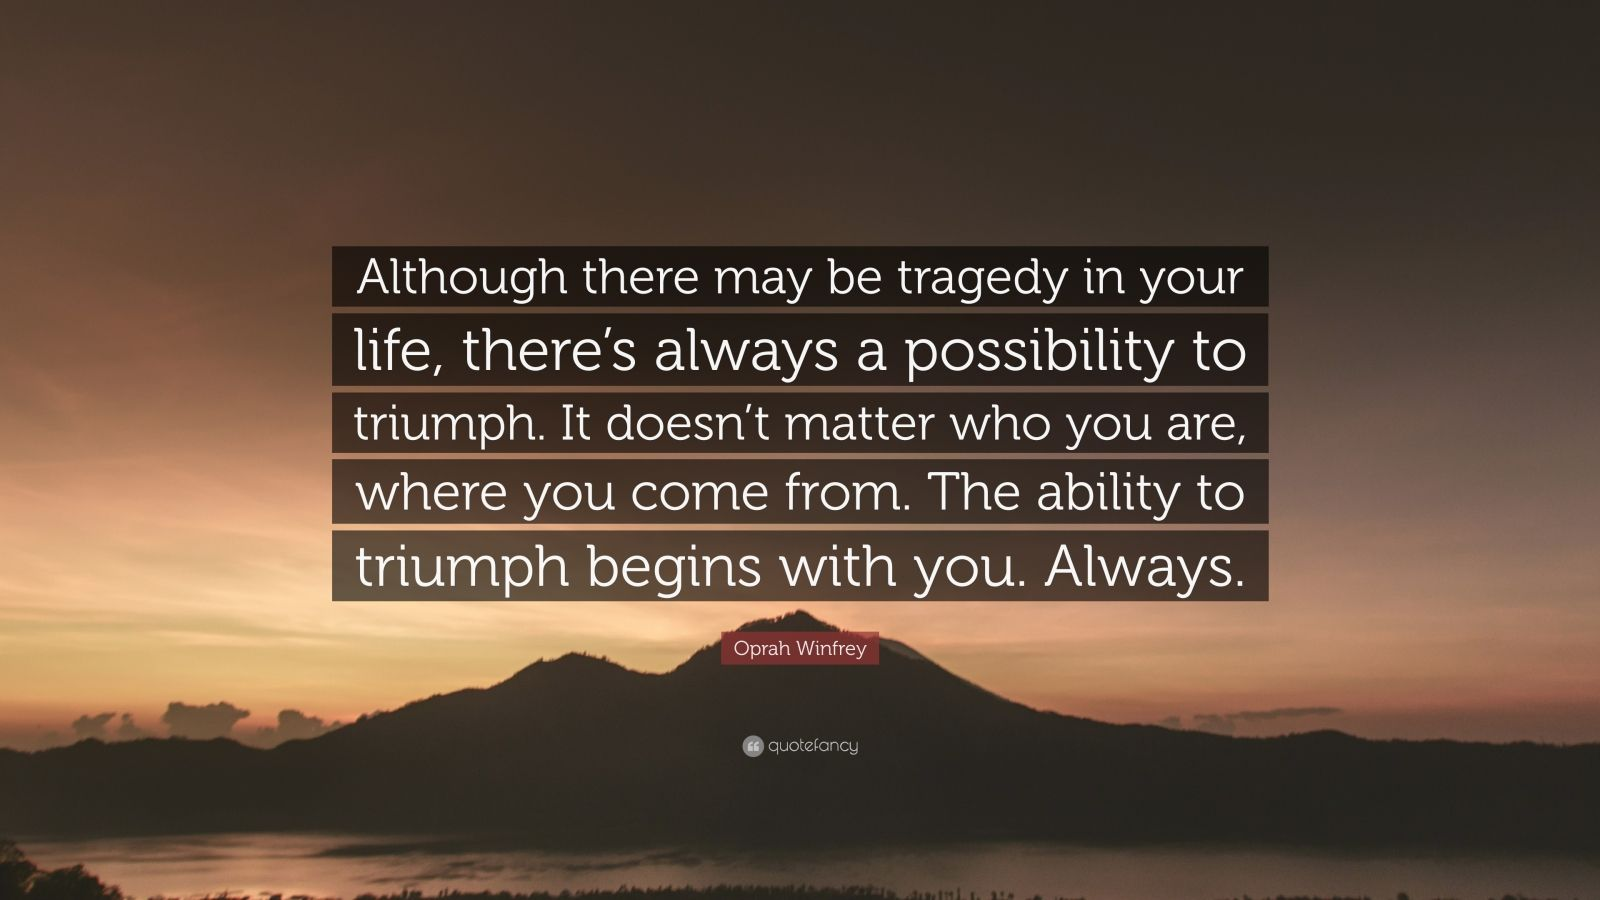 """Oprah Winfrey Quote: """"Although there may be tragedy in your life, there's always a possibility to triumph. It doesn't matter who you are, where you come from. The ability to triumph begins with you. Always."""""""